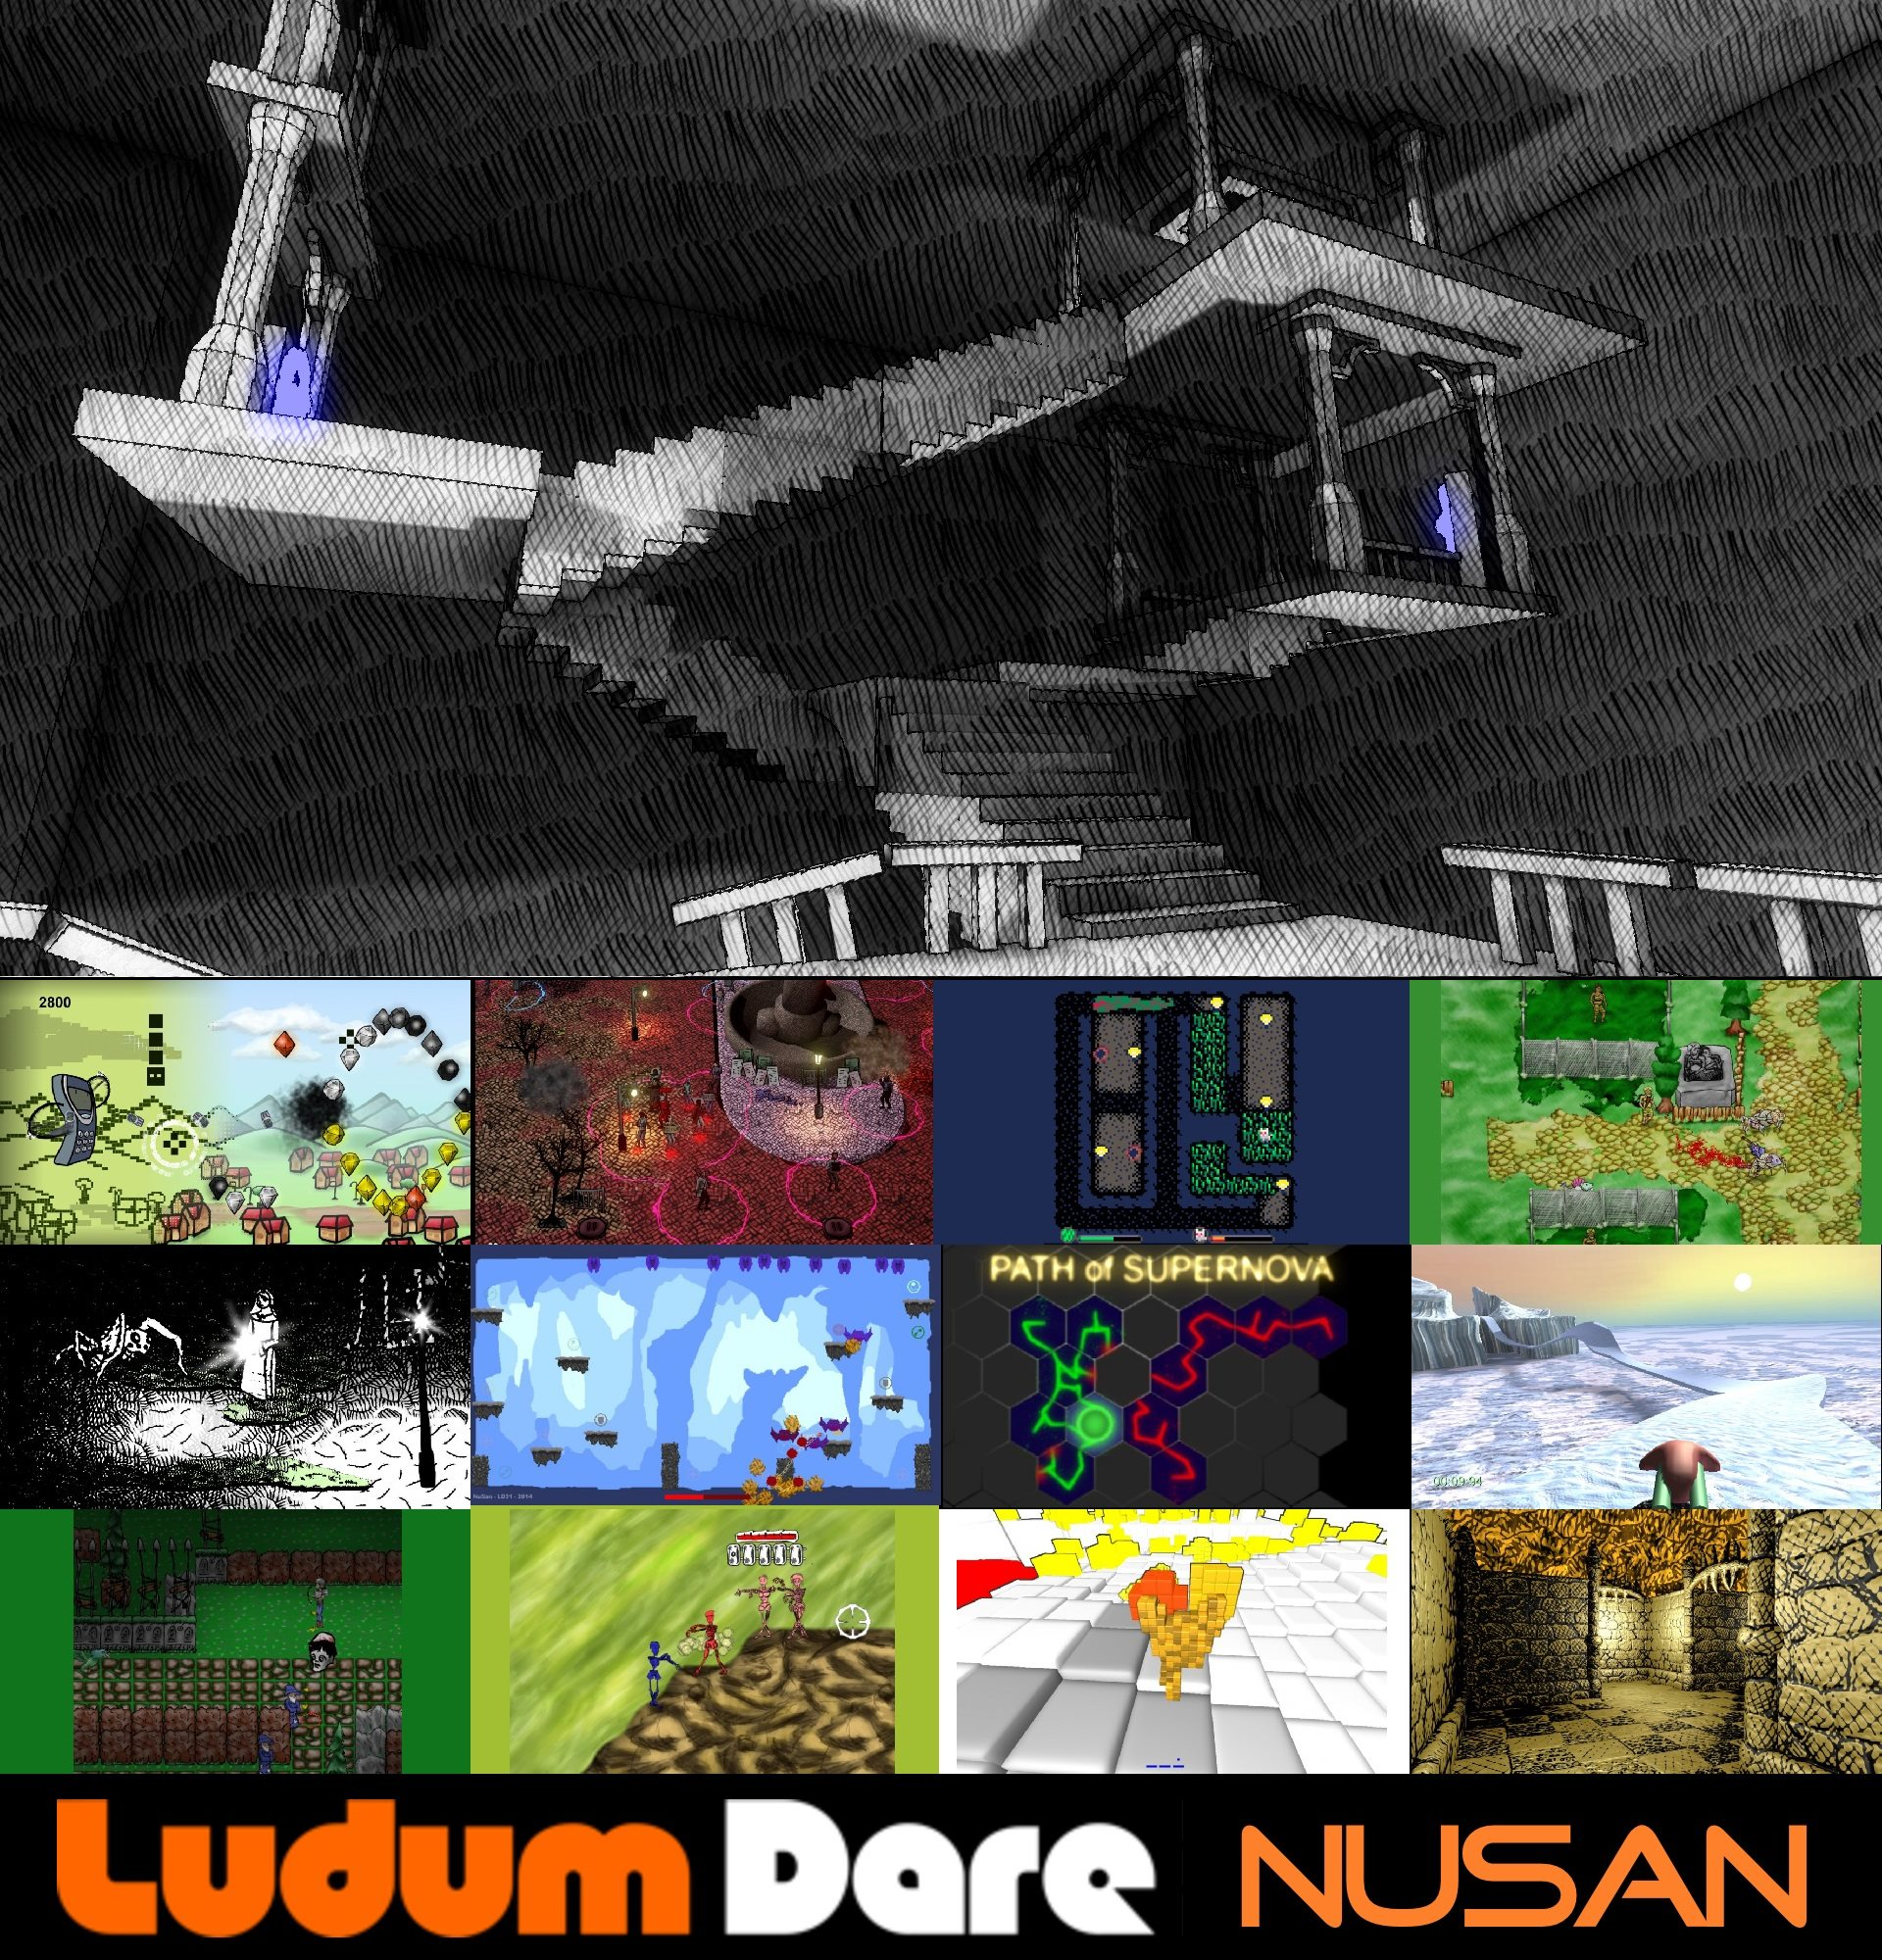 Nusan - Ludum Dare entries